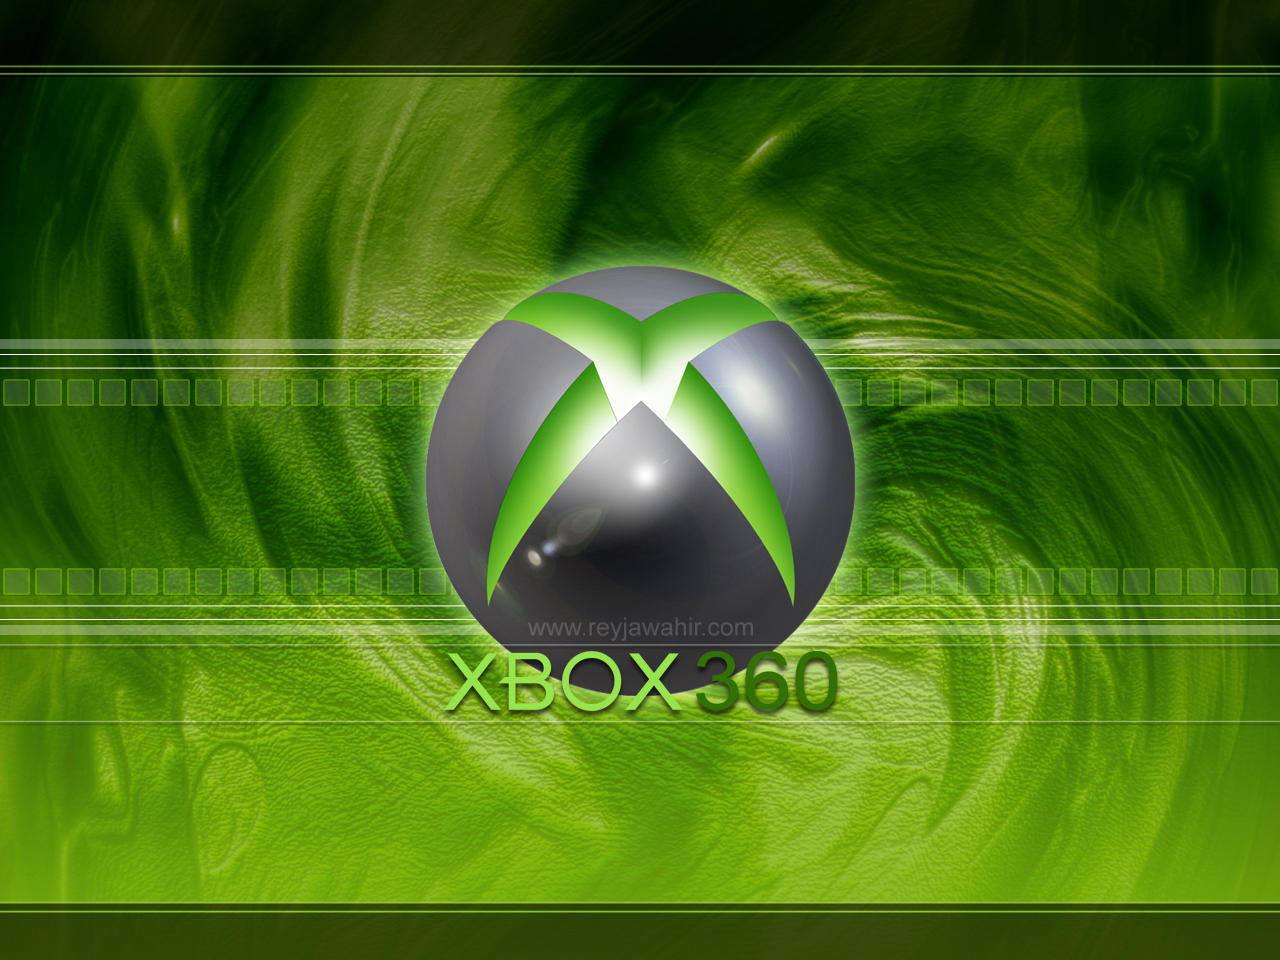 Xbox 360 Wallpaper by reyjdesigns